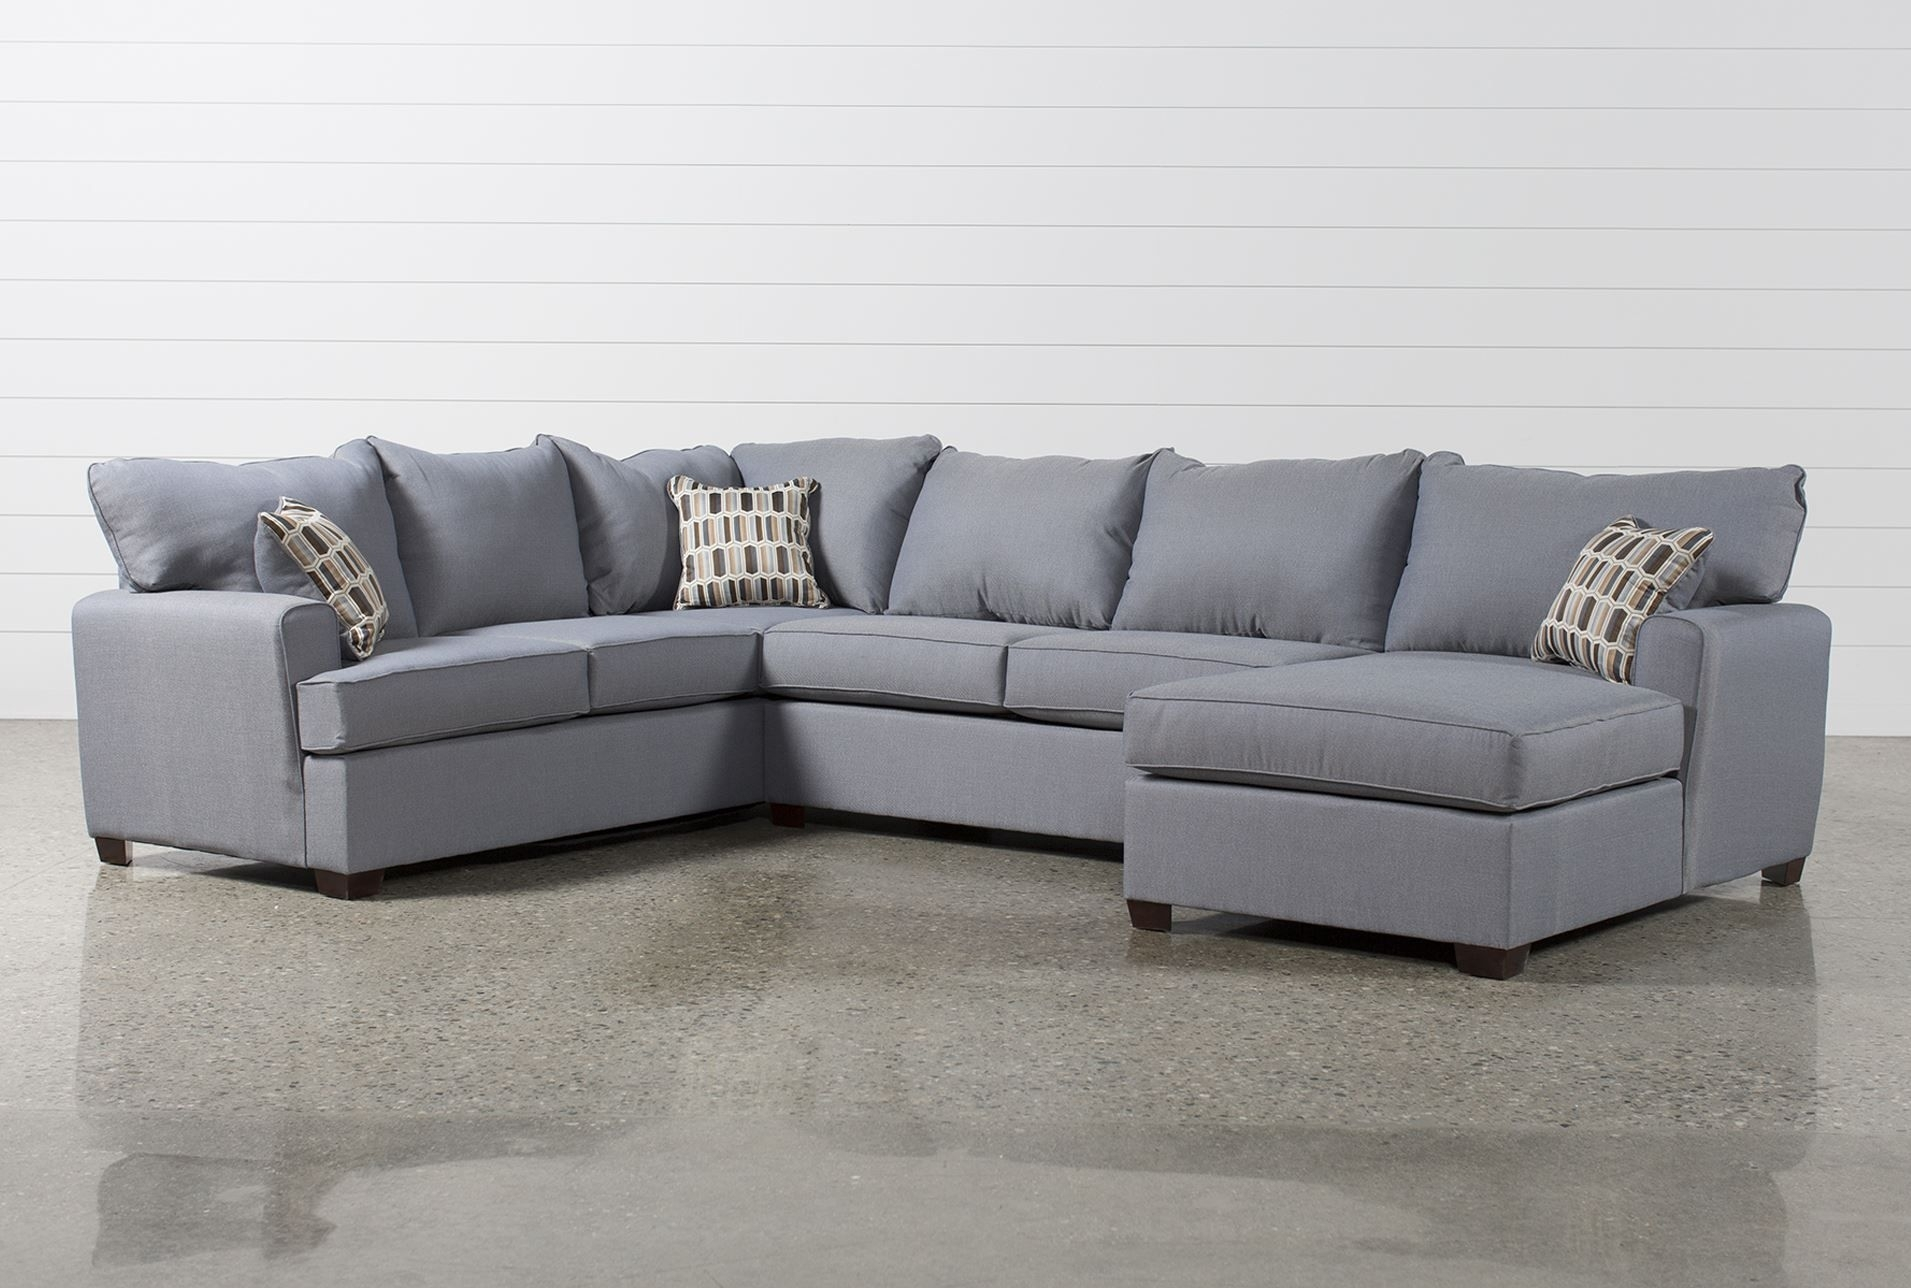 Bingham 3 Piece Sectional W/raf Chaise – Signature | For The Home In Mcdade Graphite 2 Piece Sectionals With Raf Chaise (View 6 of 25)